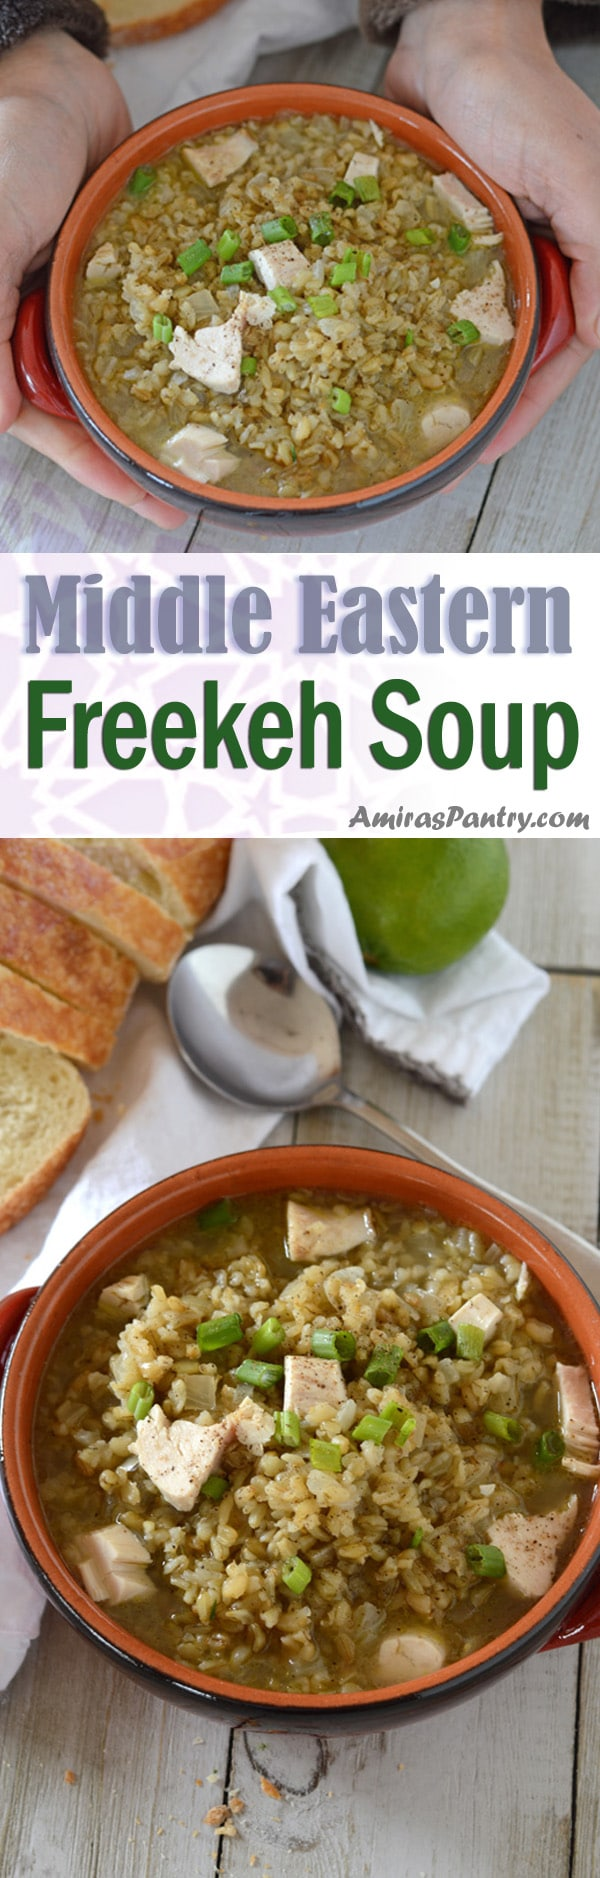 Freekeh soup in a bowl garnished with green onions.